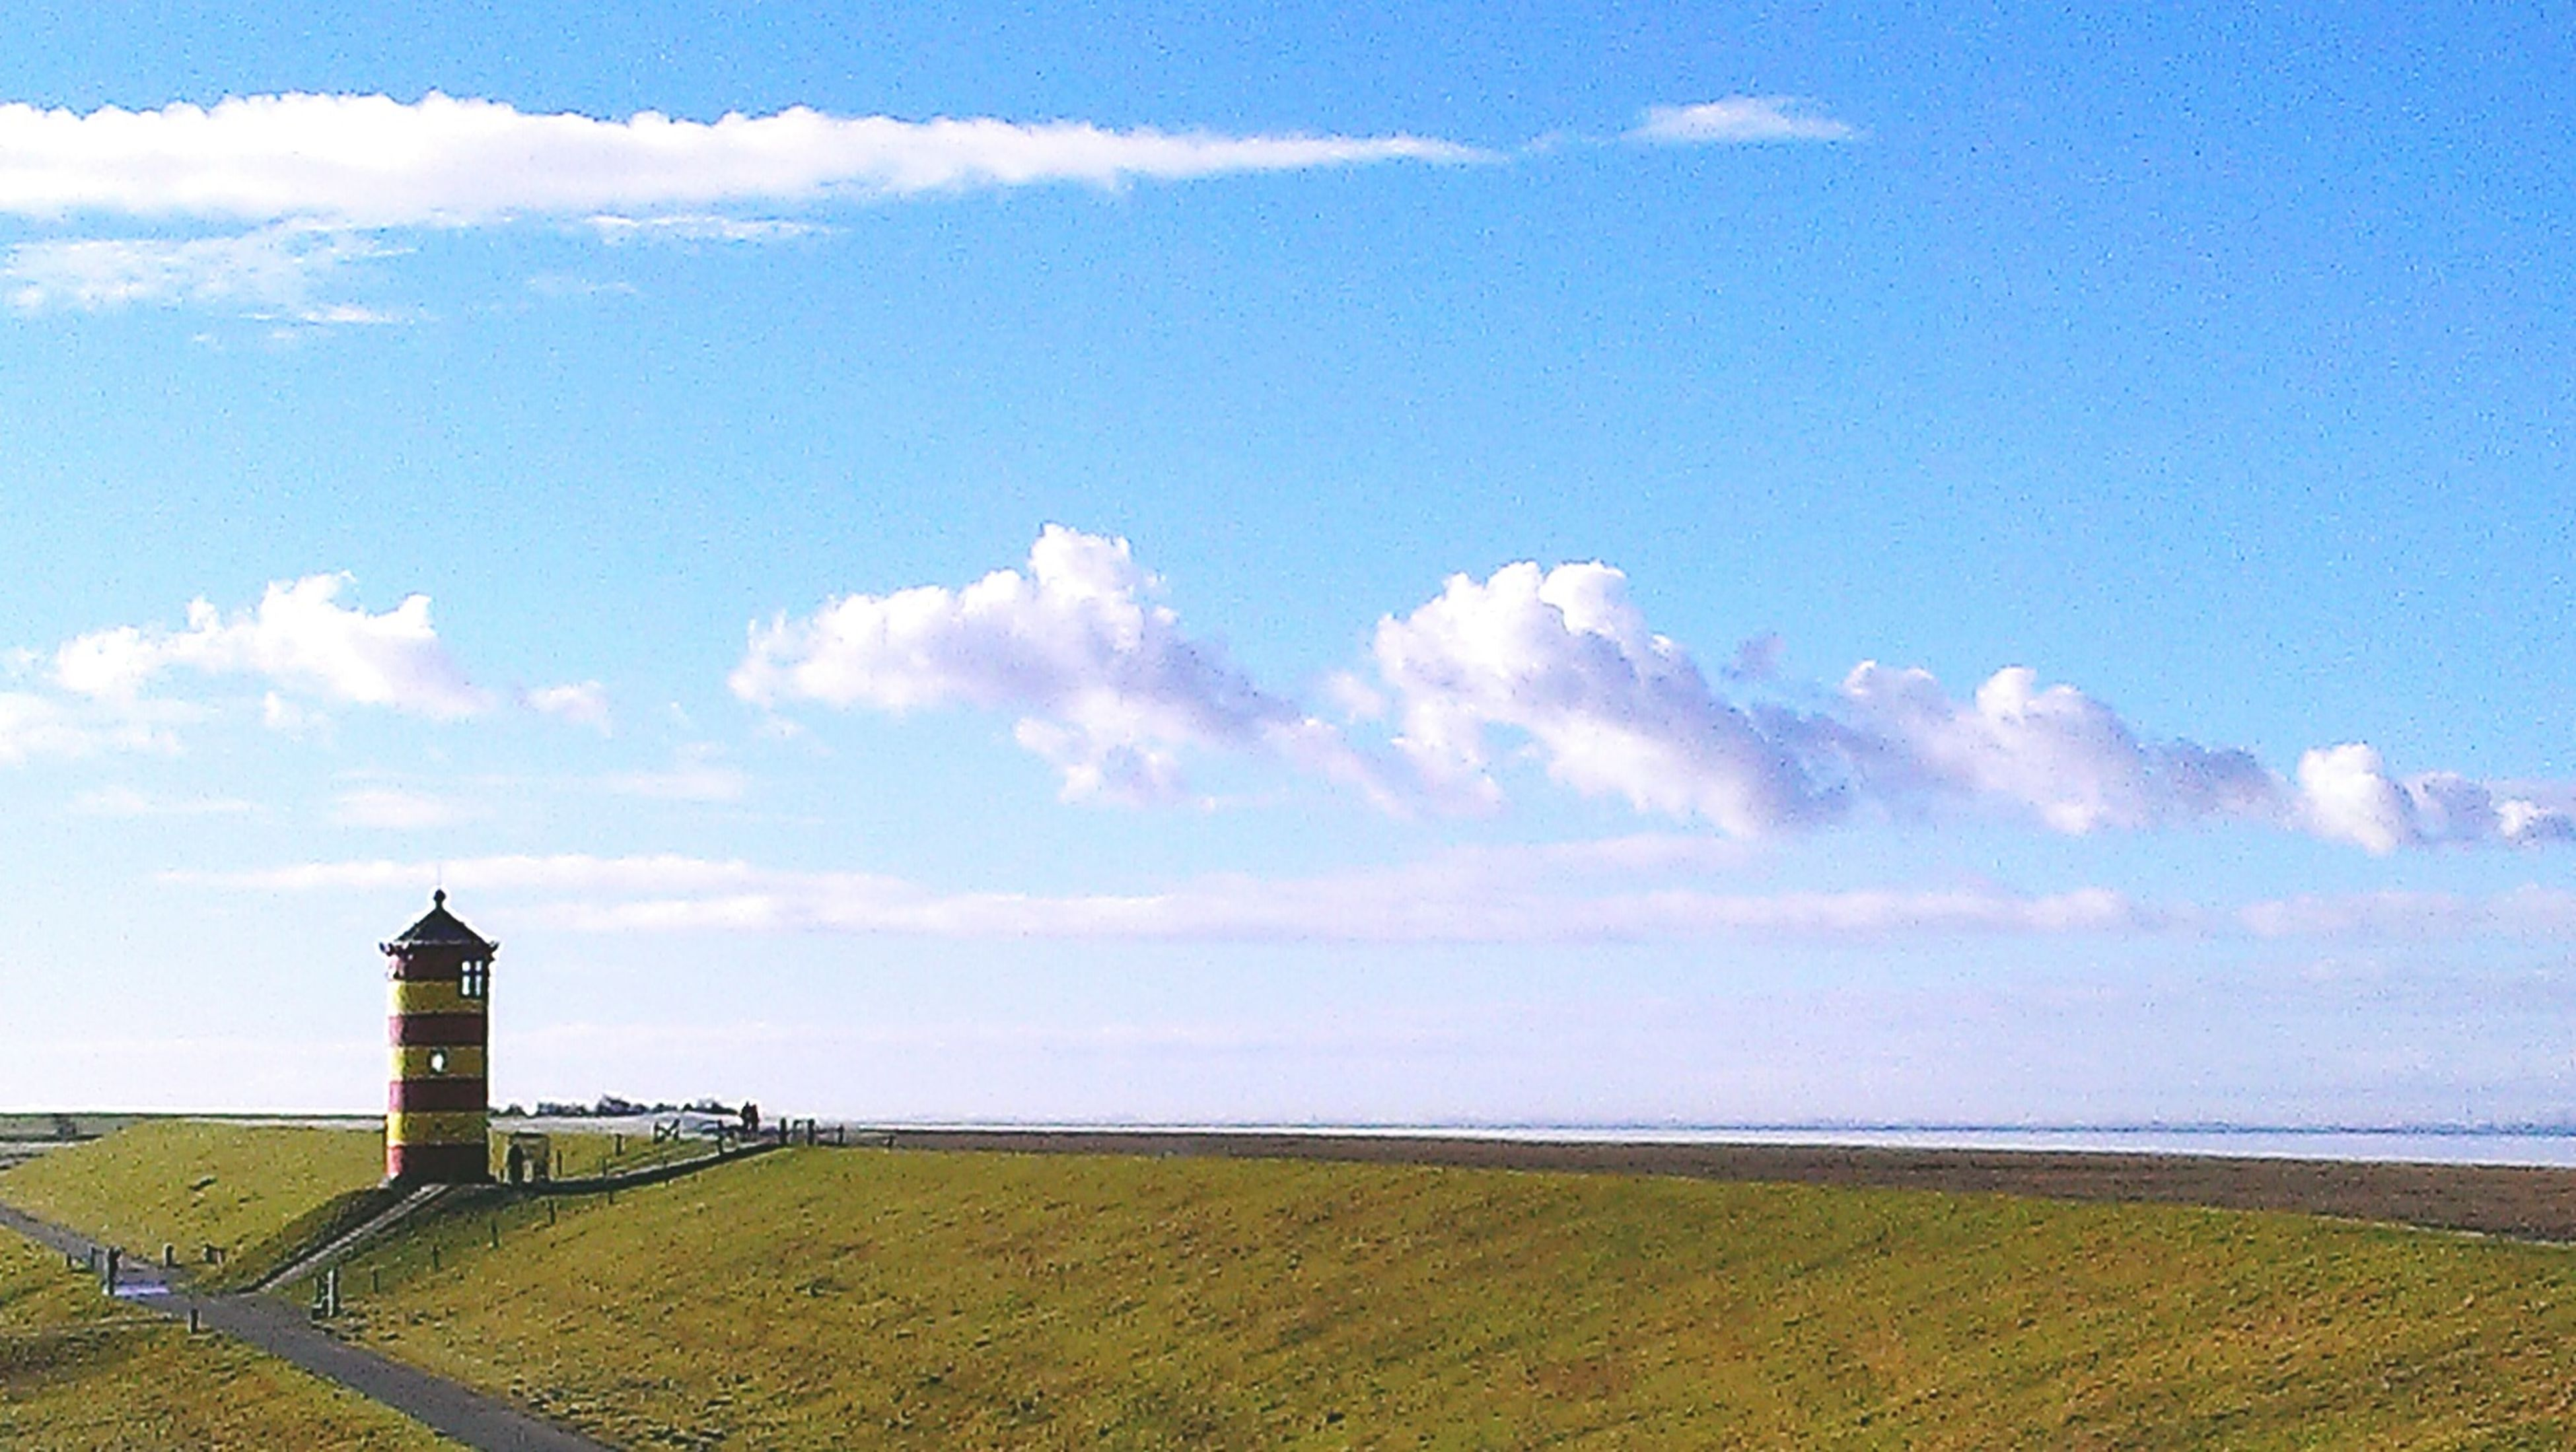 sky, sea, lighthouse, cloud - sky, horizon over water, built structure, scenics, tranquility, cloud, tranquil scene, architecture, guidance, blue, beauty in nature, water, protection, building exterior, nature, grass, safety